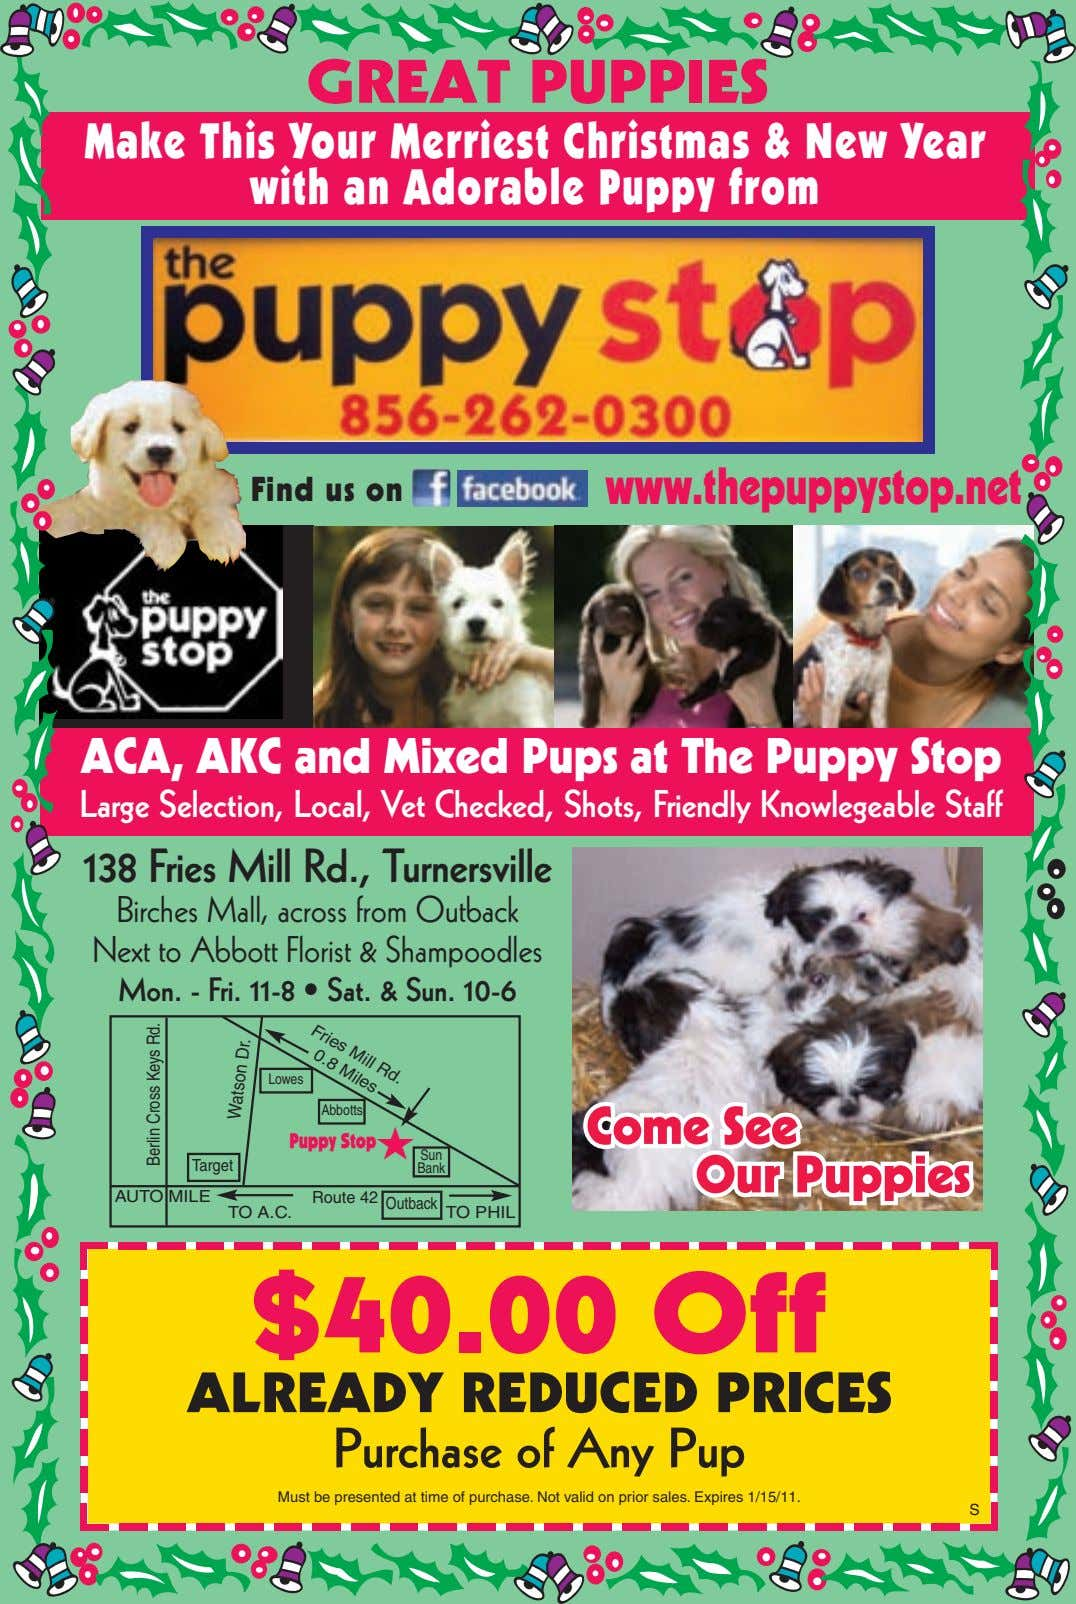 GREAT PUPPIES Make This Your Merriest Christmas & New Year with an Adorable Puppy from Find